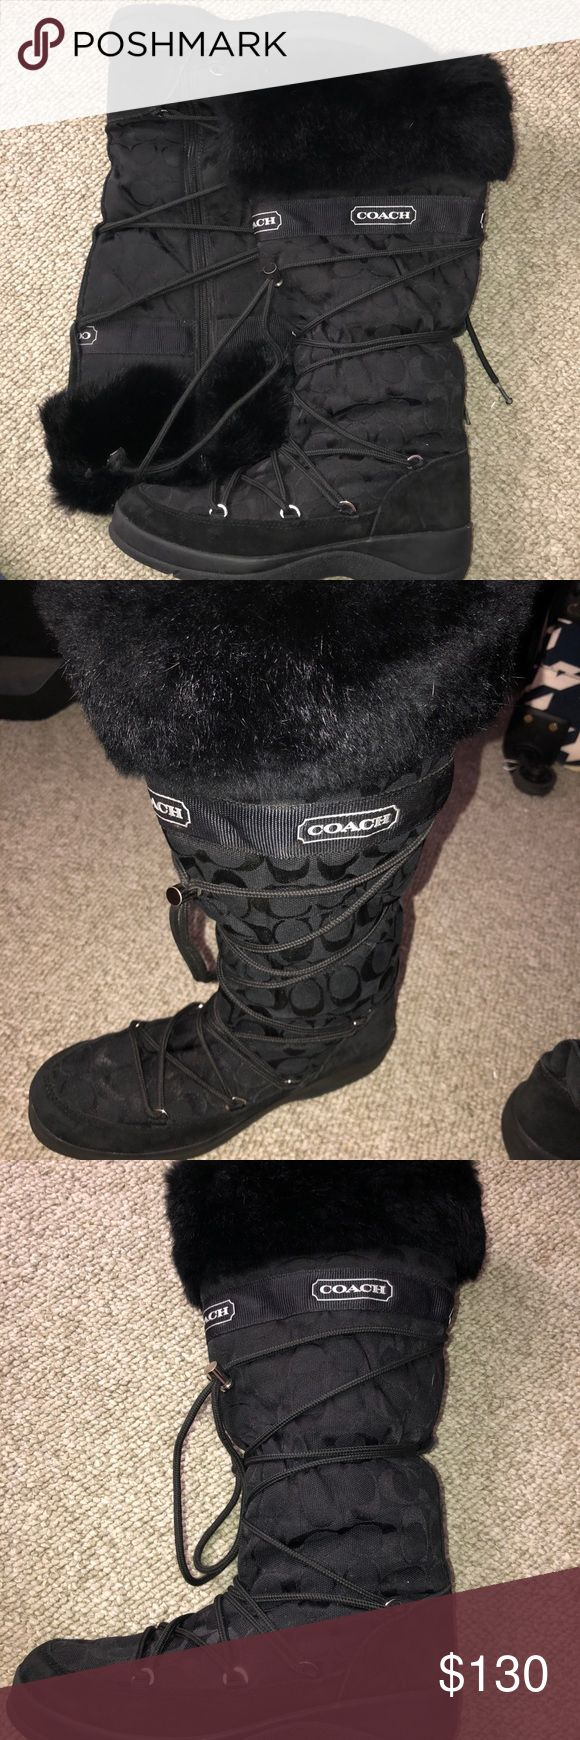 Coach Boots Size 8.5 100% authentic Black Coach Boots size 8.5.  Perfect winter boots! They're super comfortable and warm.  In great condition. Coach Shoes Winter & Rain Boots